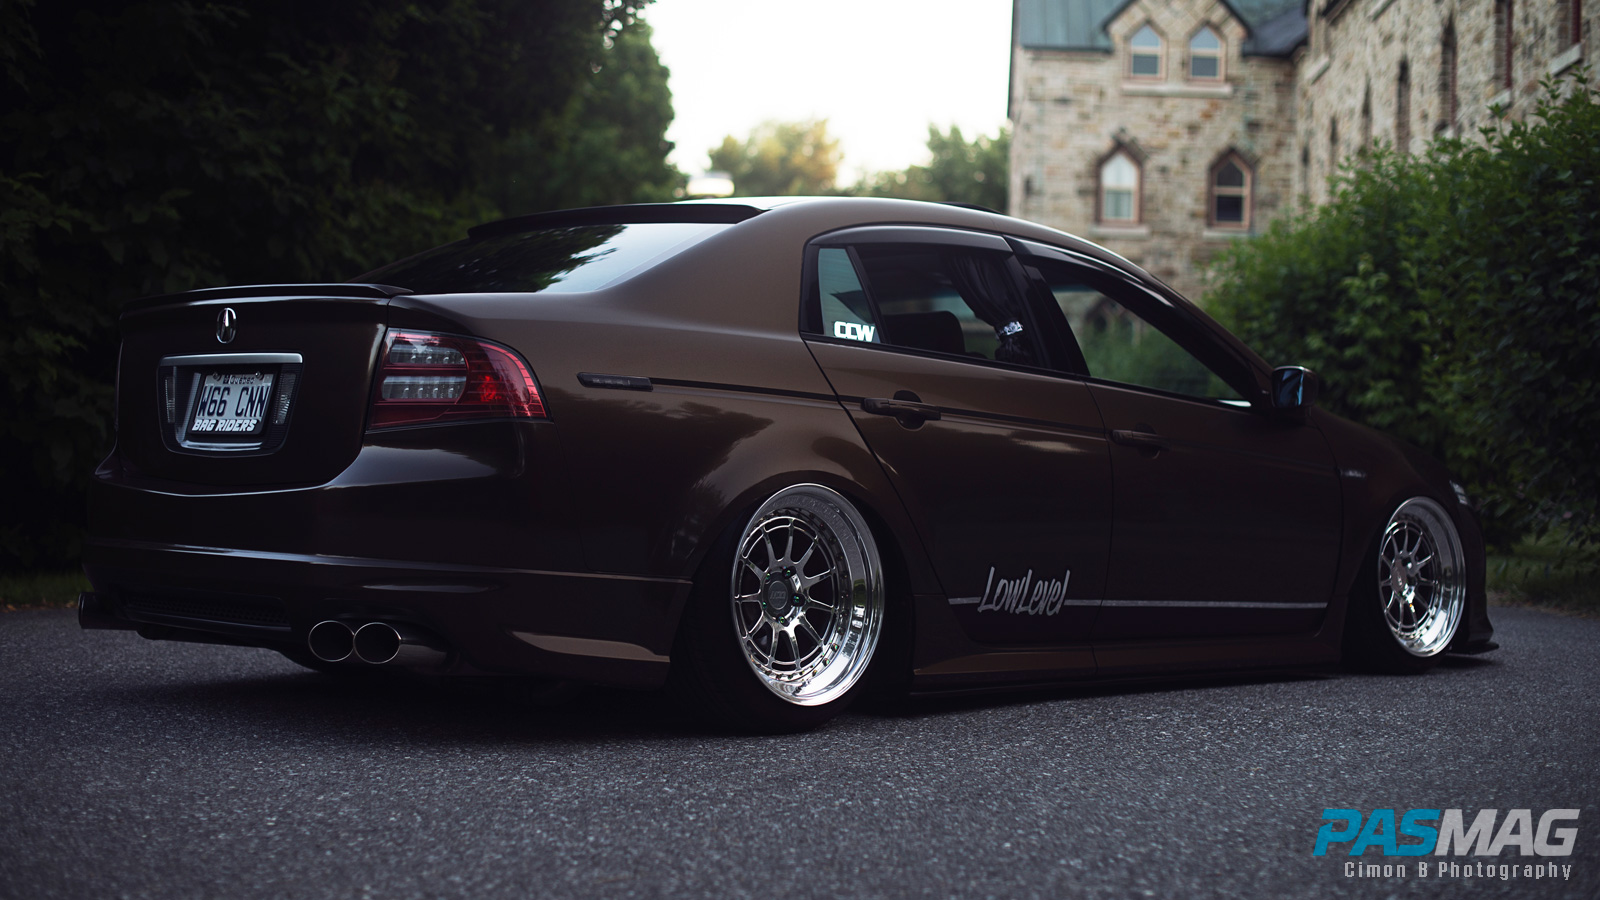 hight resolution of pasmag trending tuner battlegrounds alexander angers 2004 acura tl cimon b photography right corner